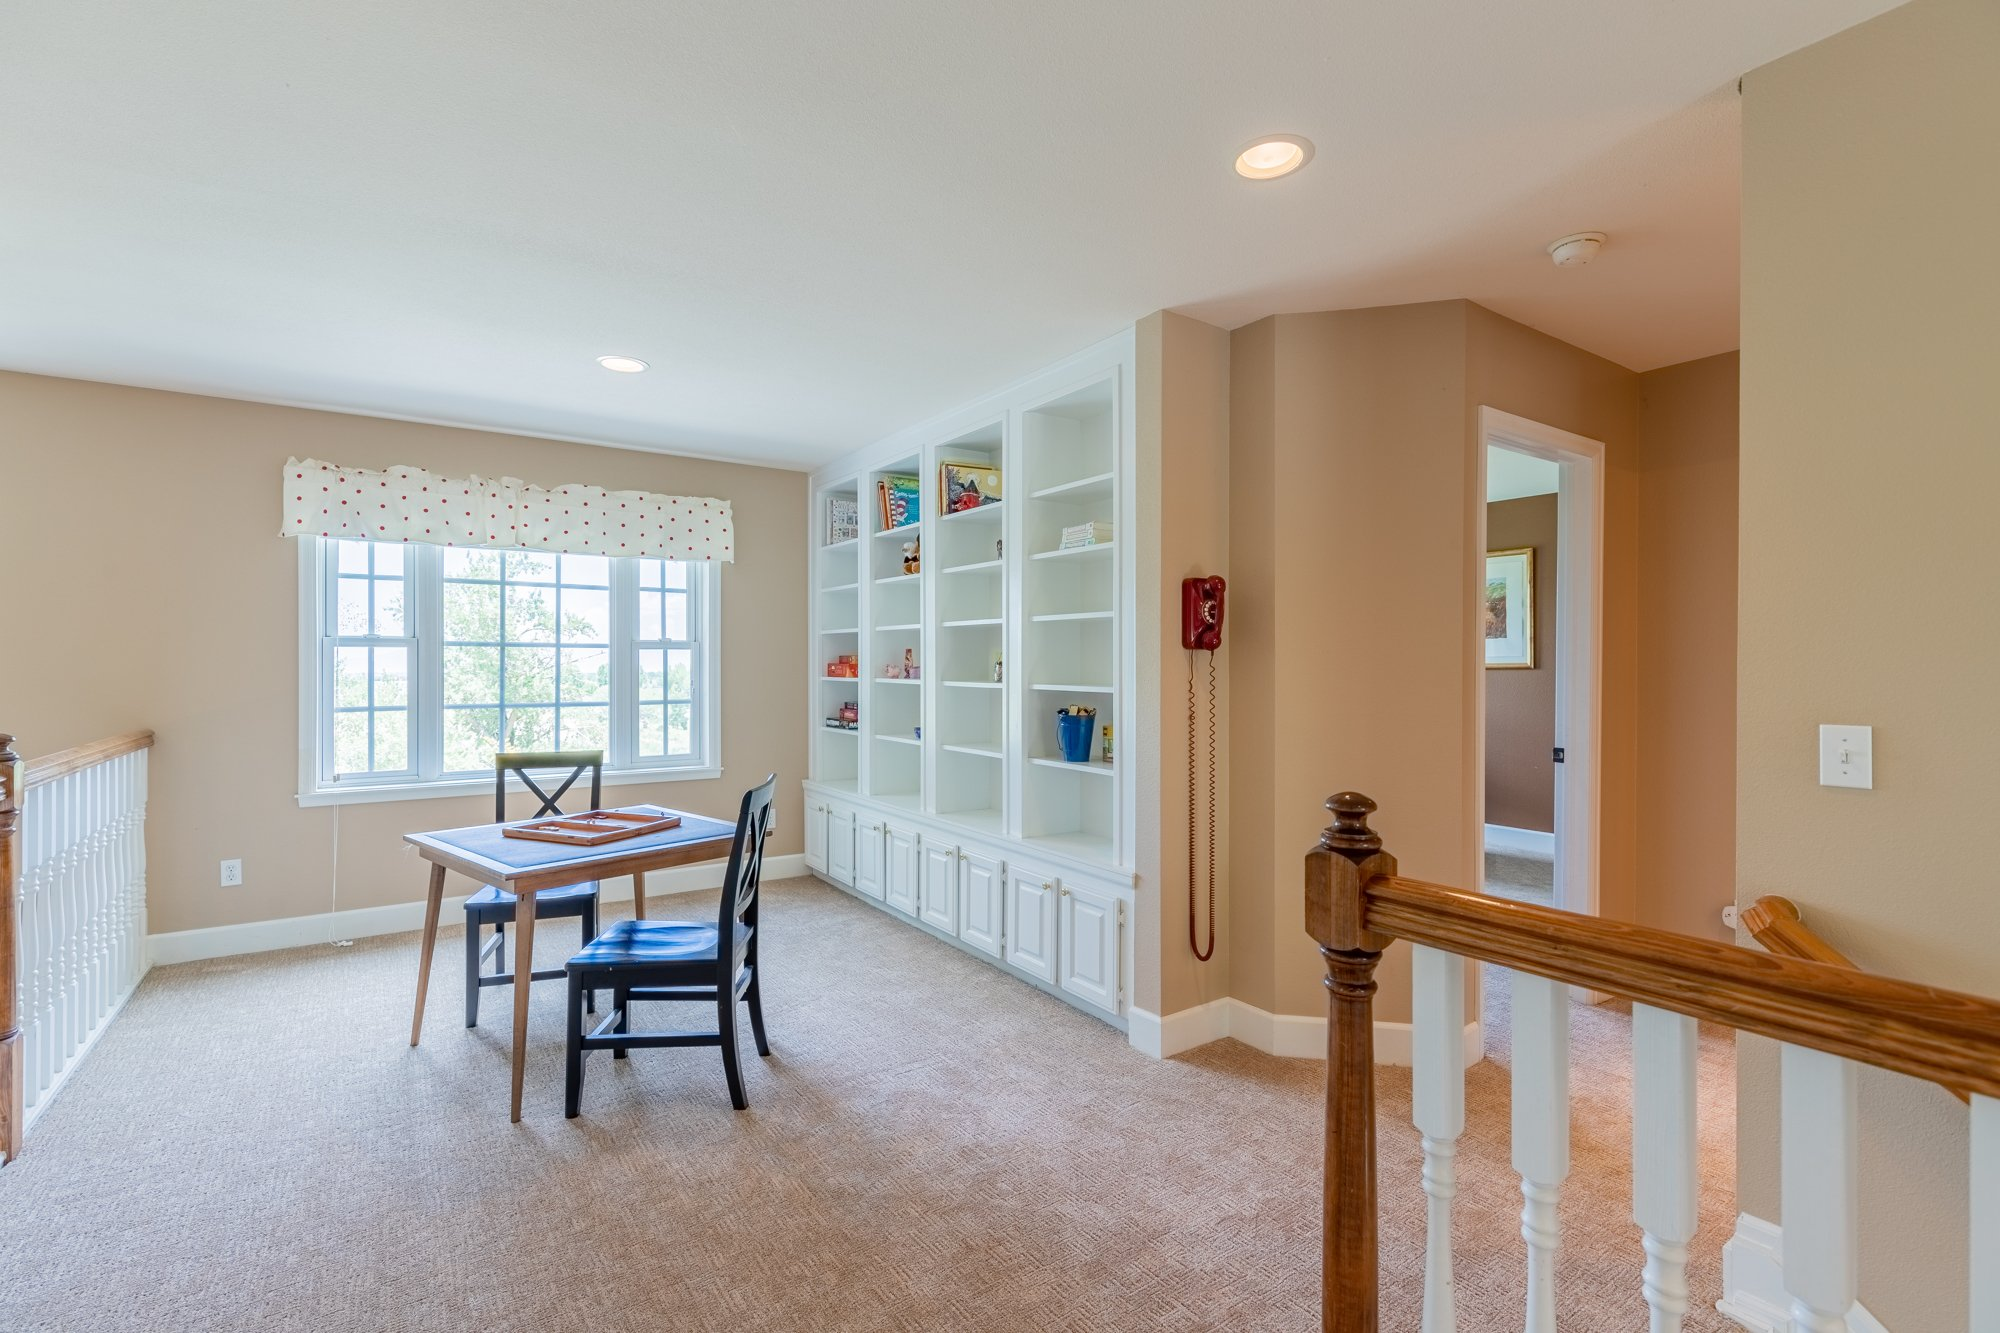 Upstairs Open Area with Built Ins - 2049 Brook Way Montrose, Co 81403 - Atha Team Luxury Real Estate